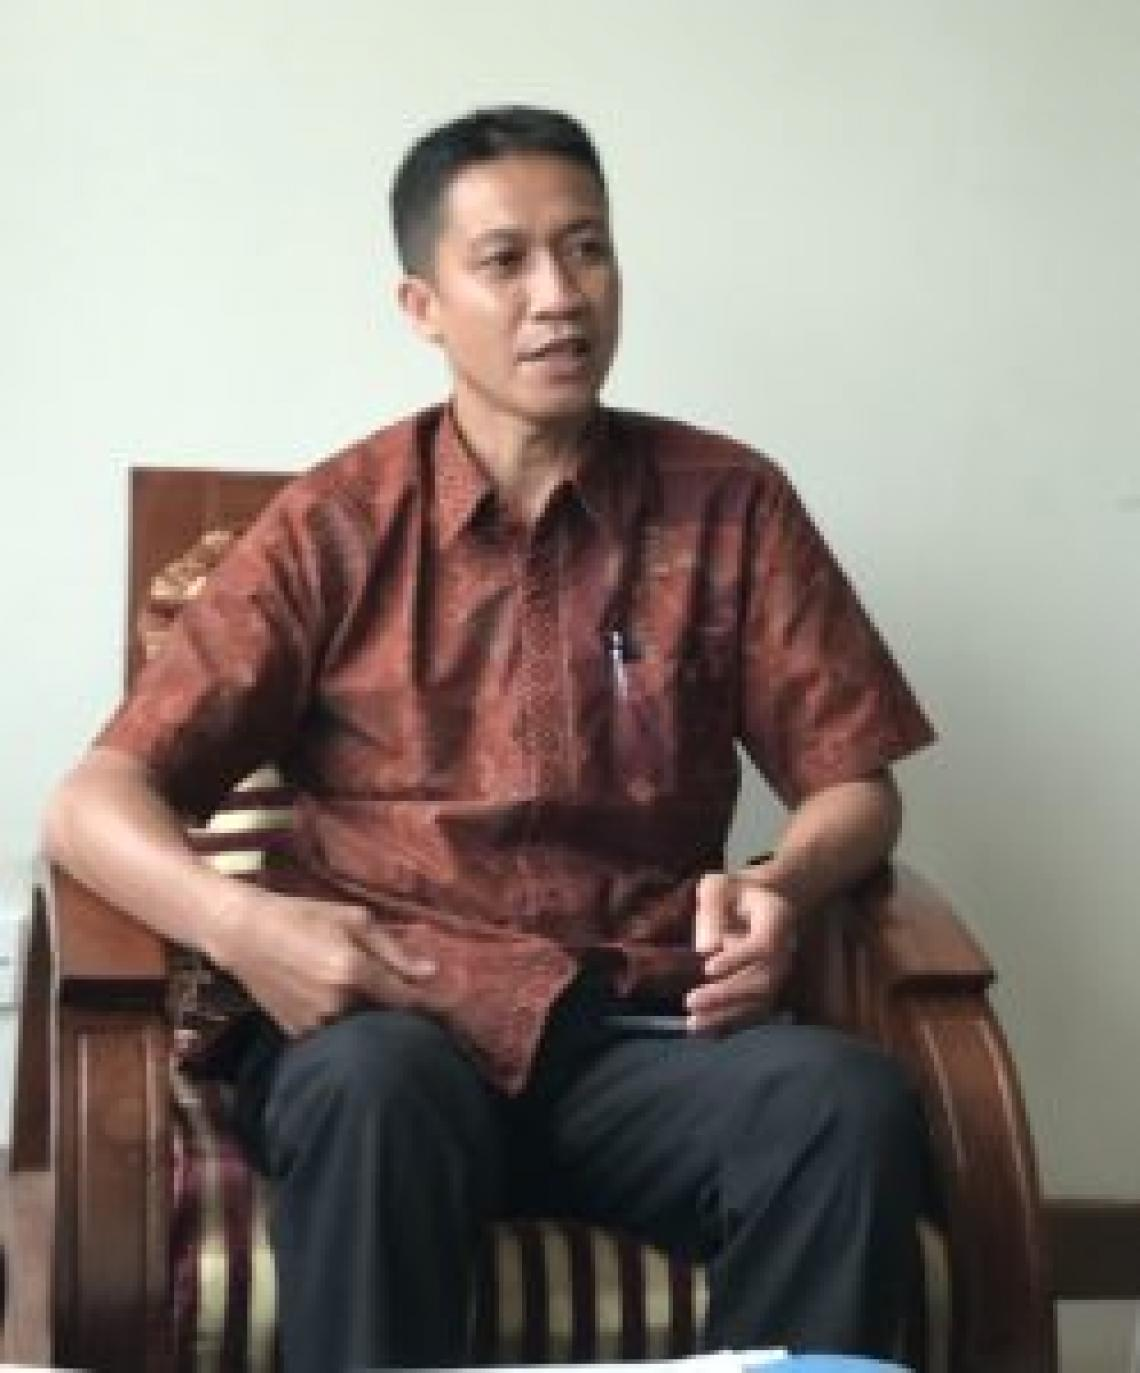 Mr Jauhari sitting down